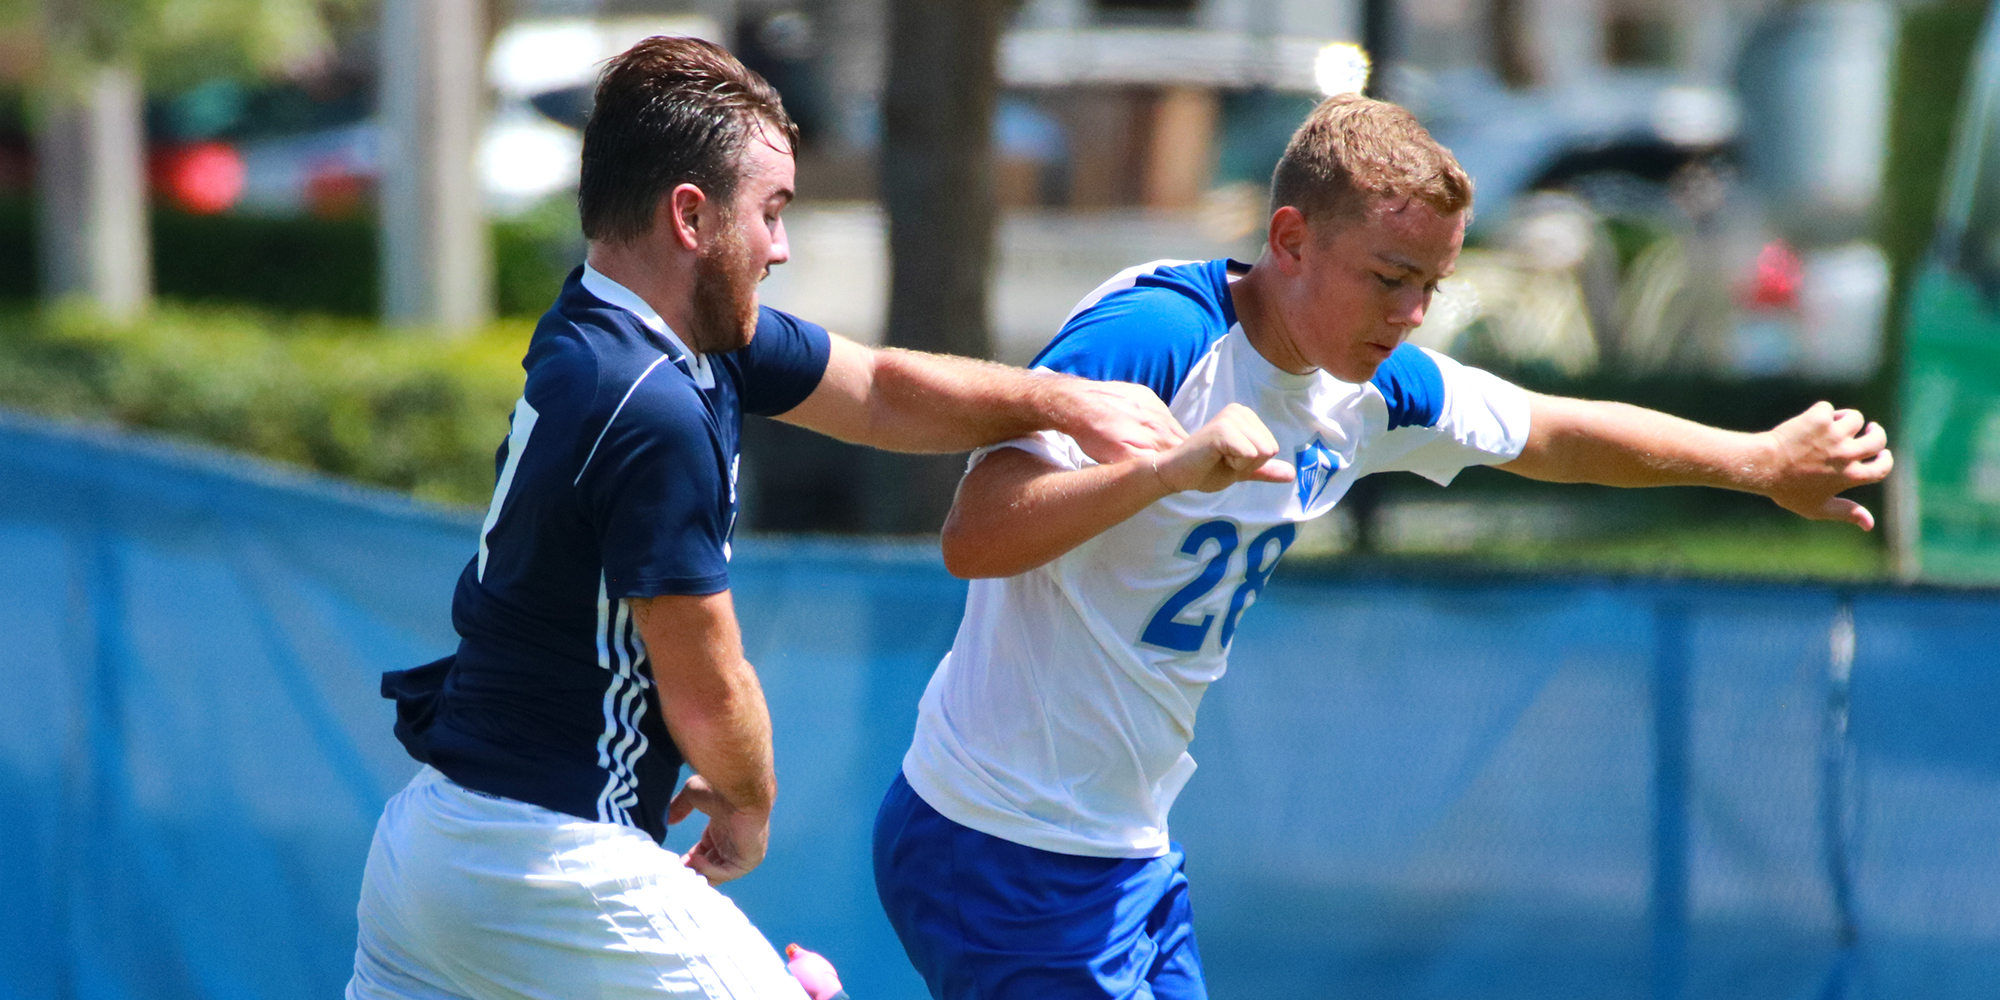 Men's Soccer Tops Florida Memorial